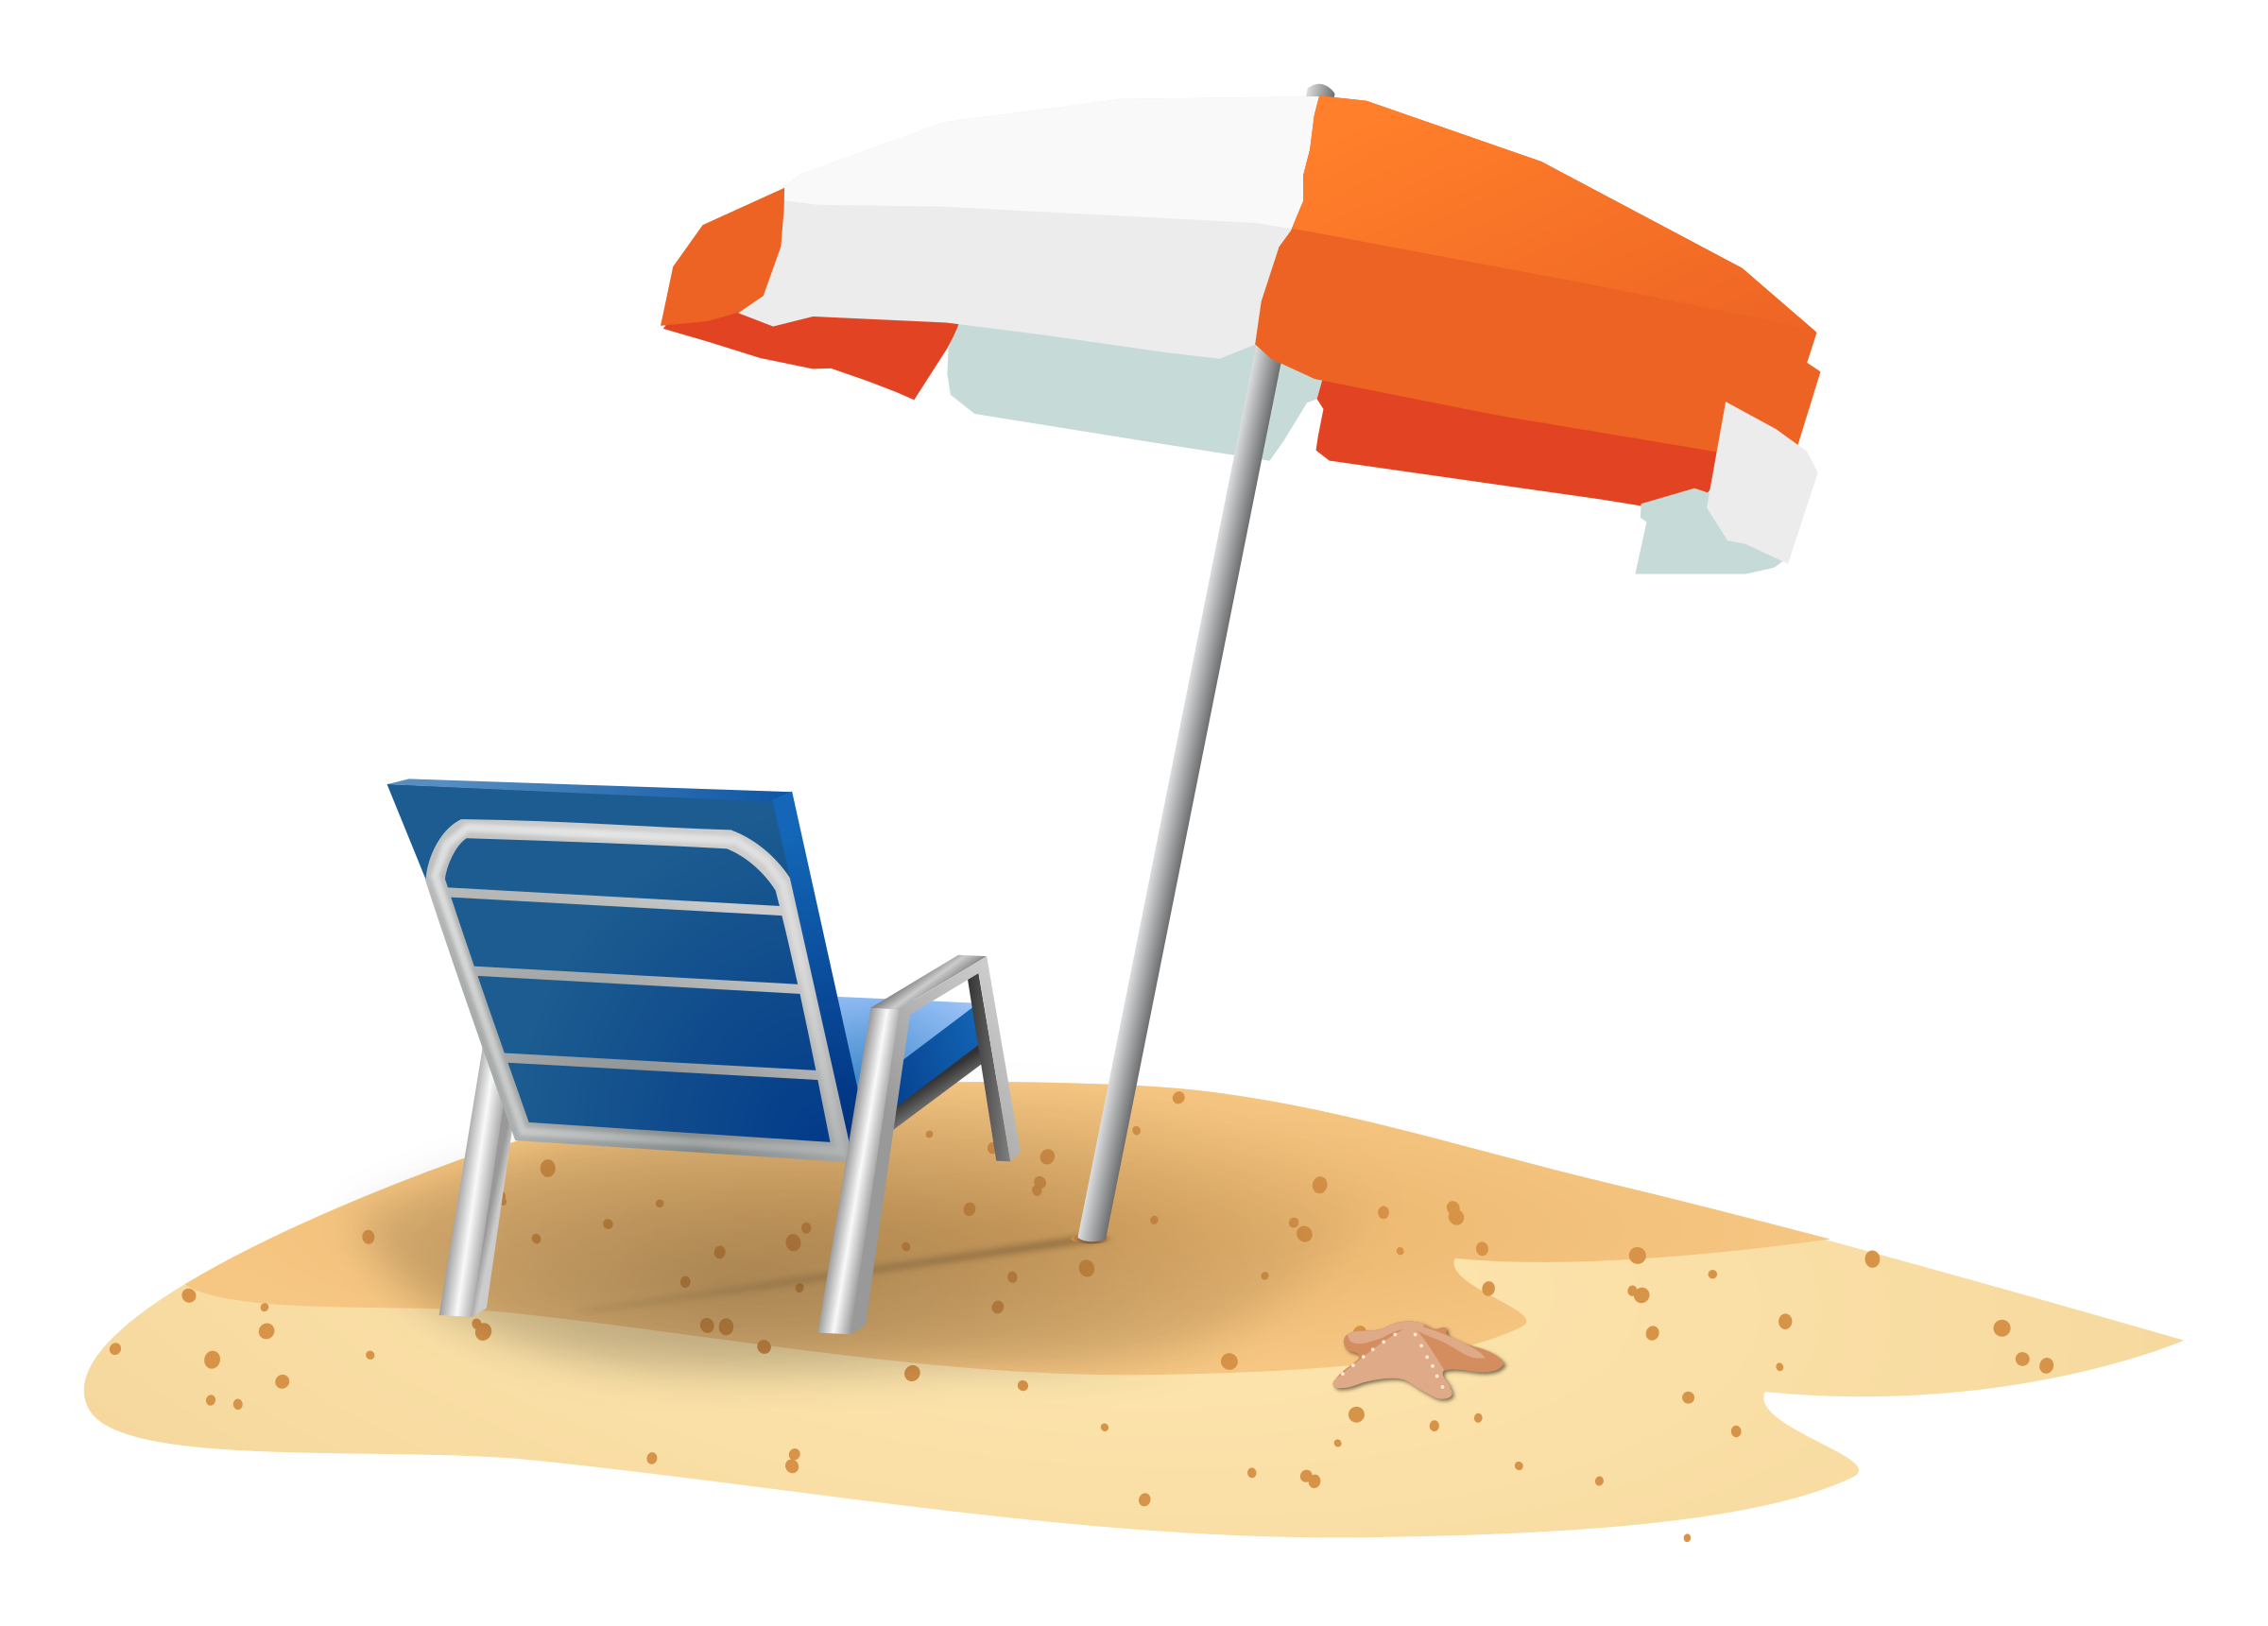 Clipart scene big image. Beach png images